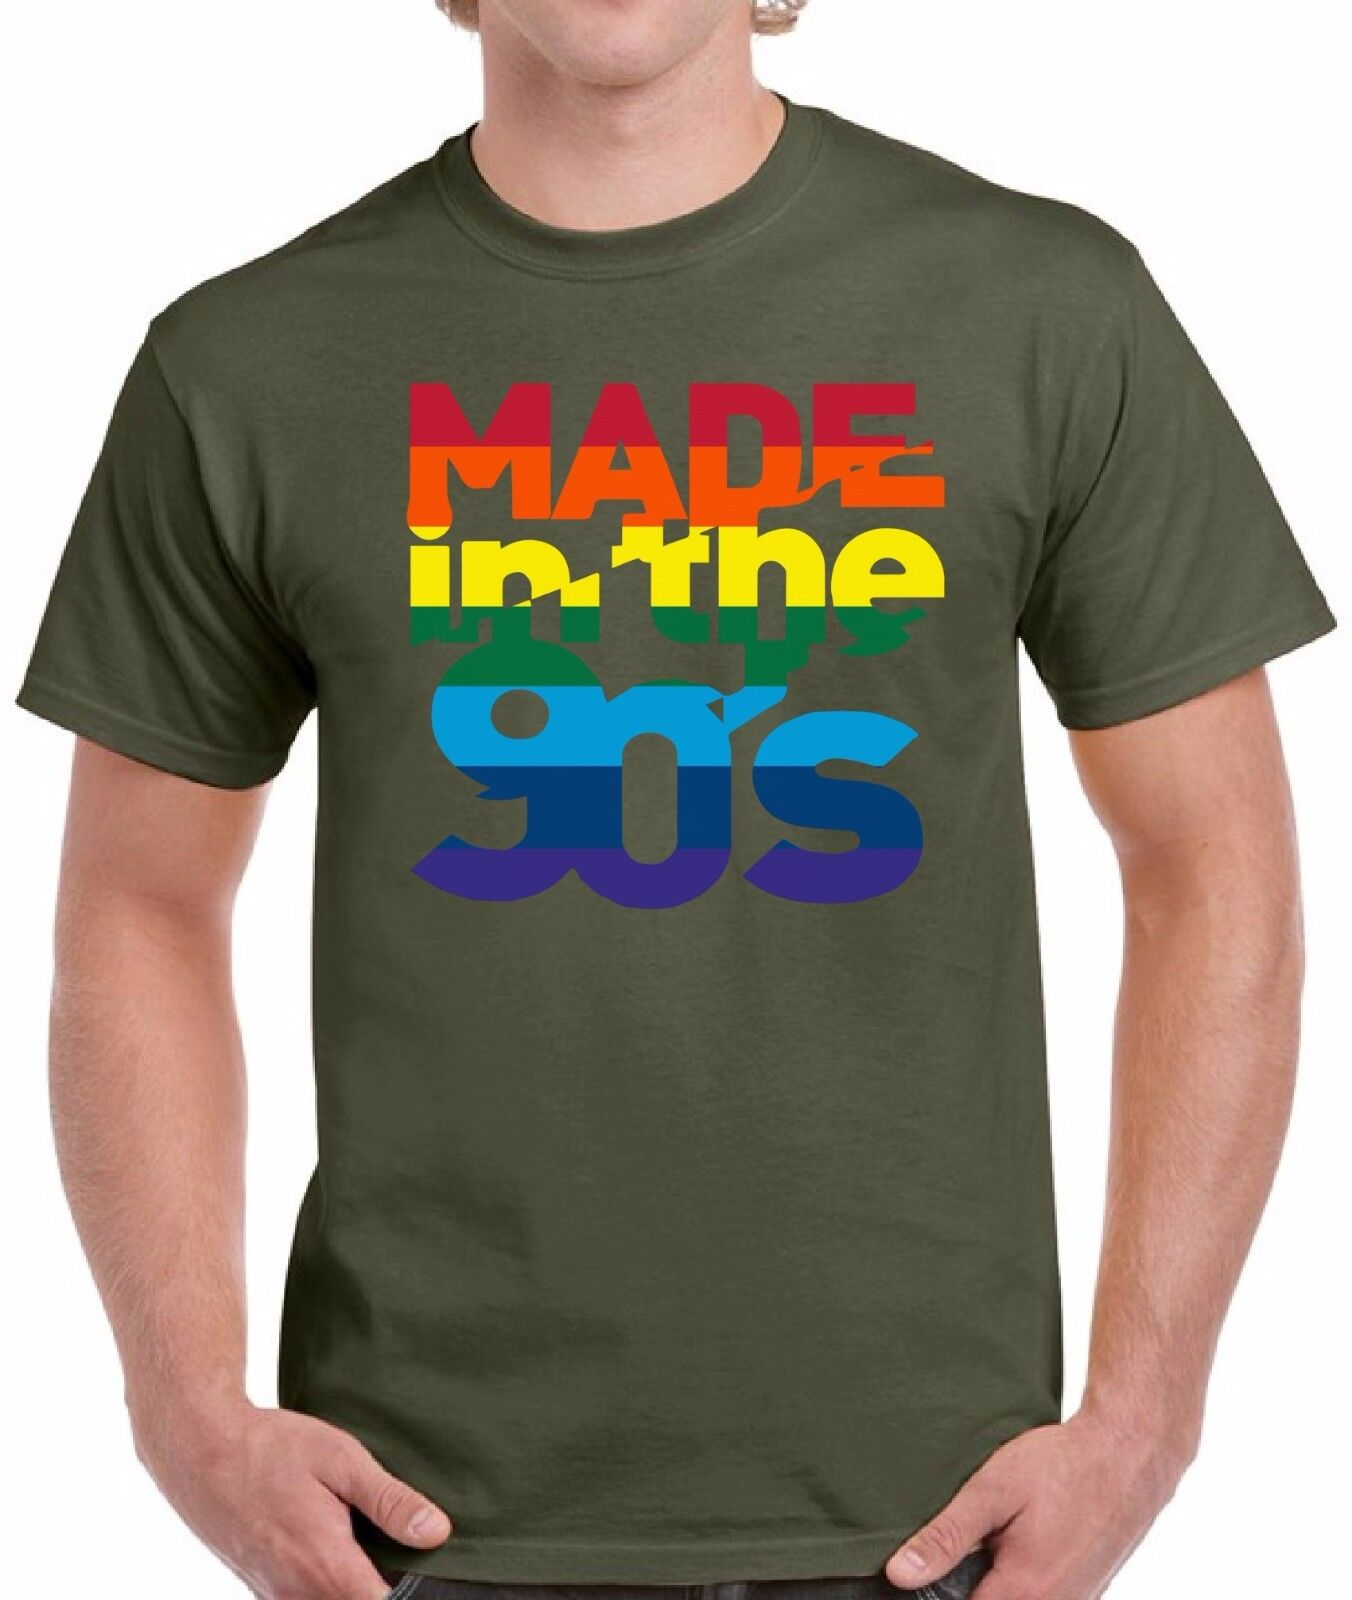 Made In The 90's Rainbow Shirts Tops T-shirts for Men Men's